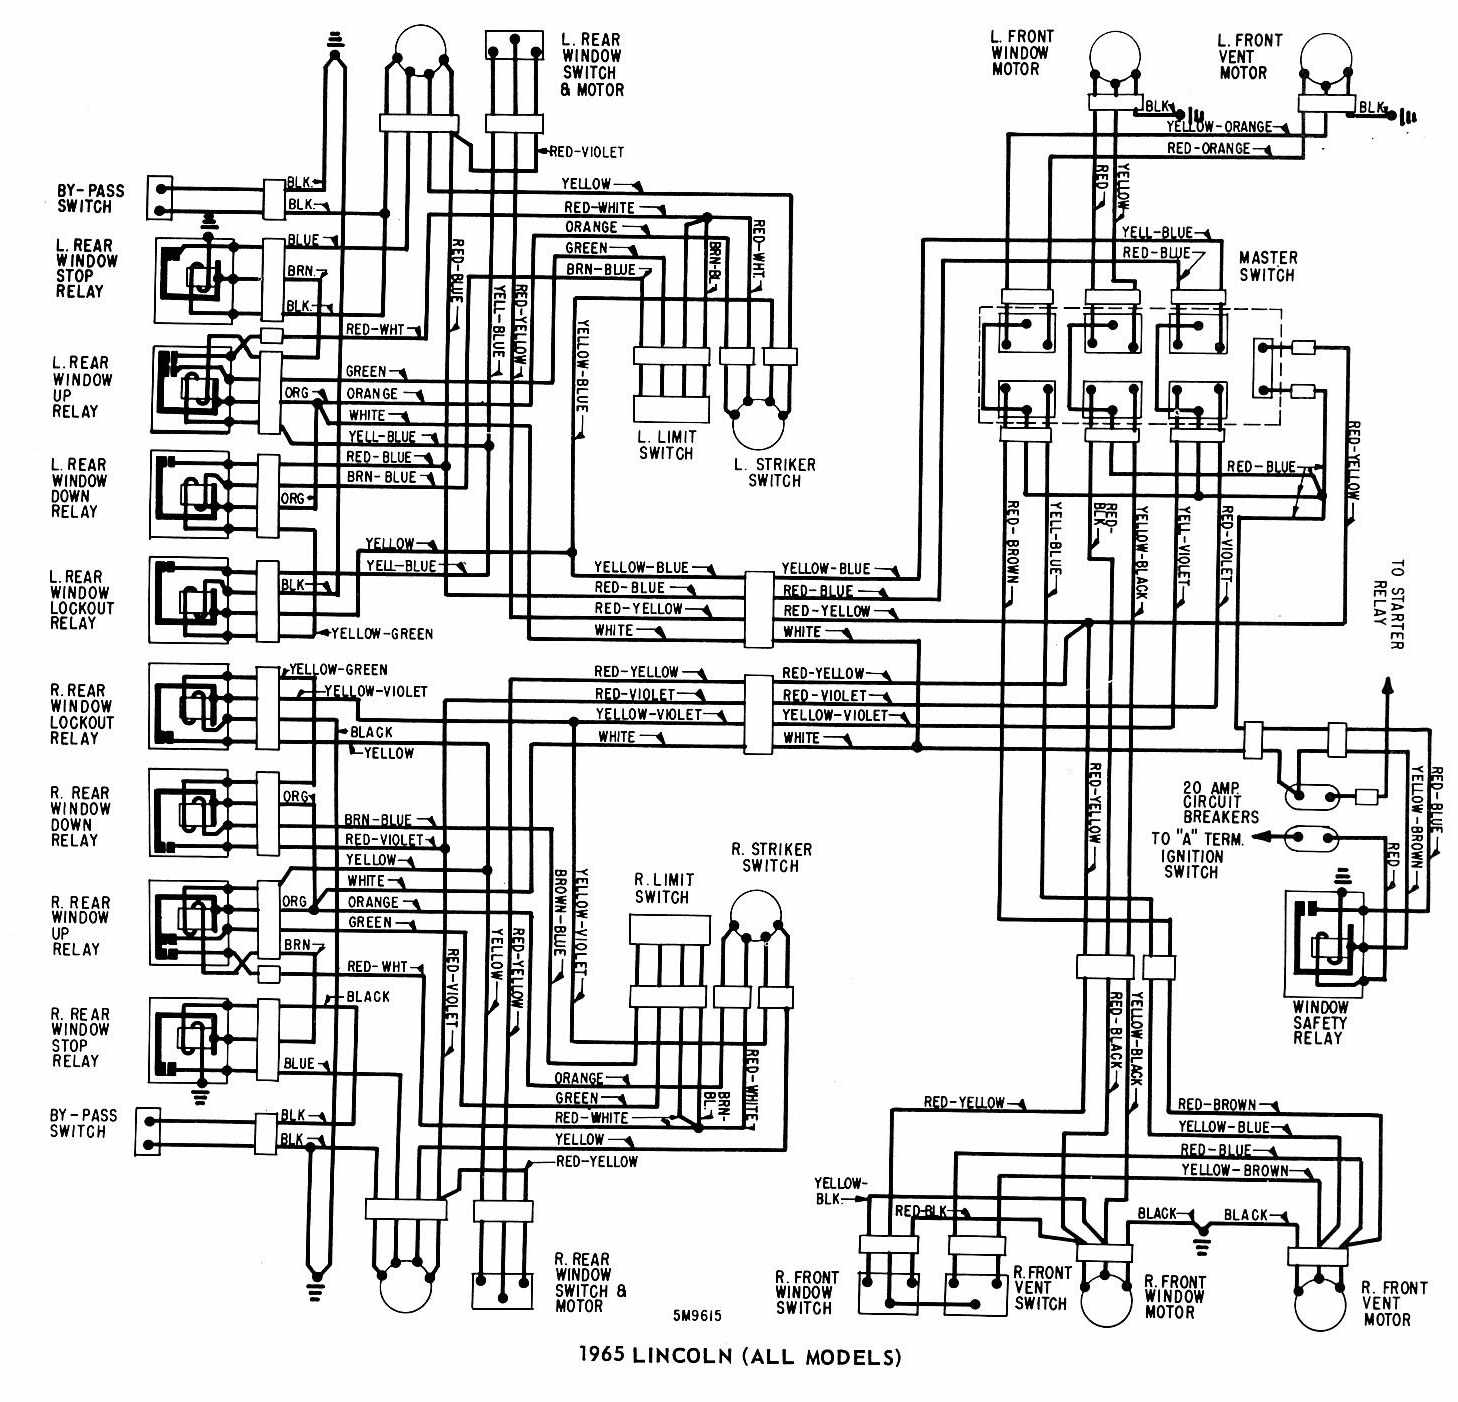 1972 lincoln wiring diagrams 1966 lincoln engine diagram. 1966. free printable wiring ...